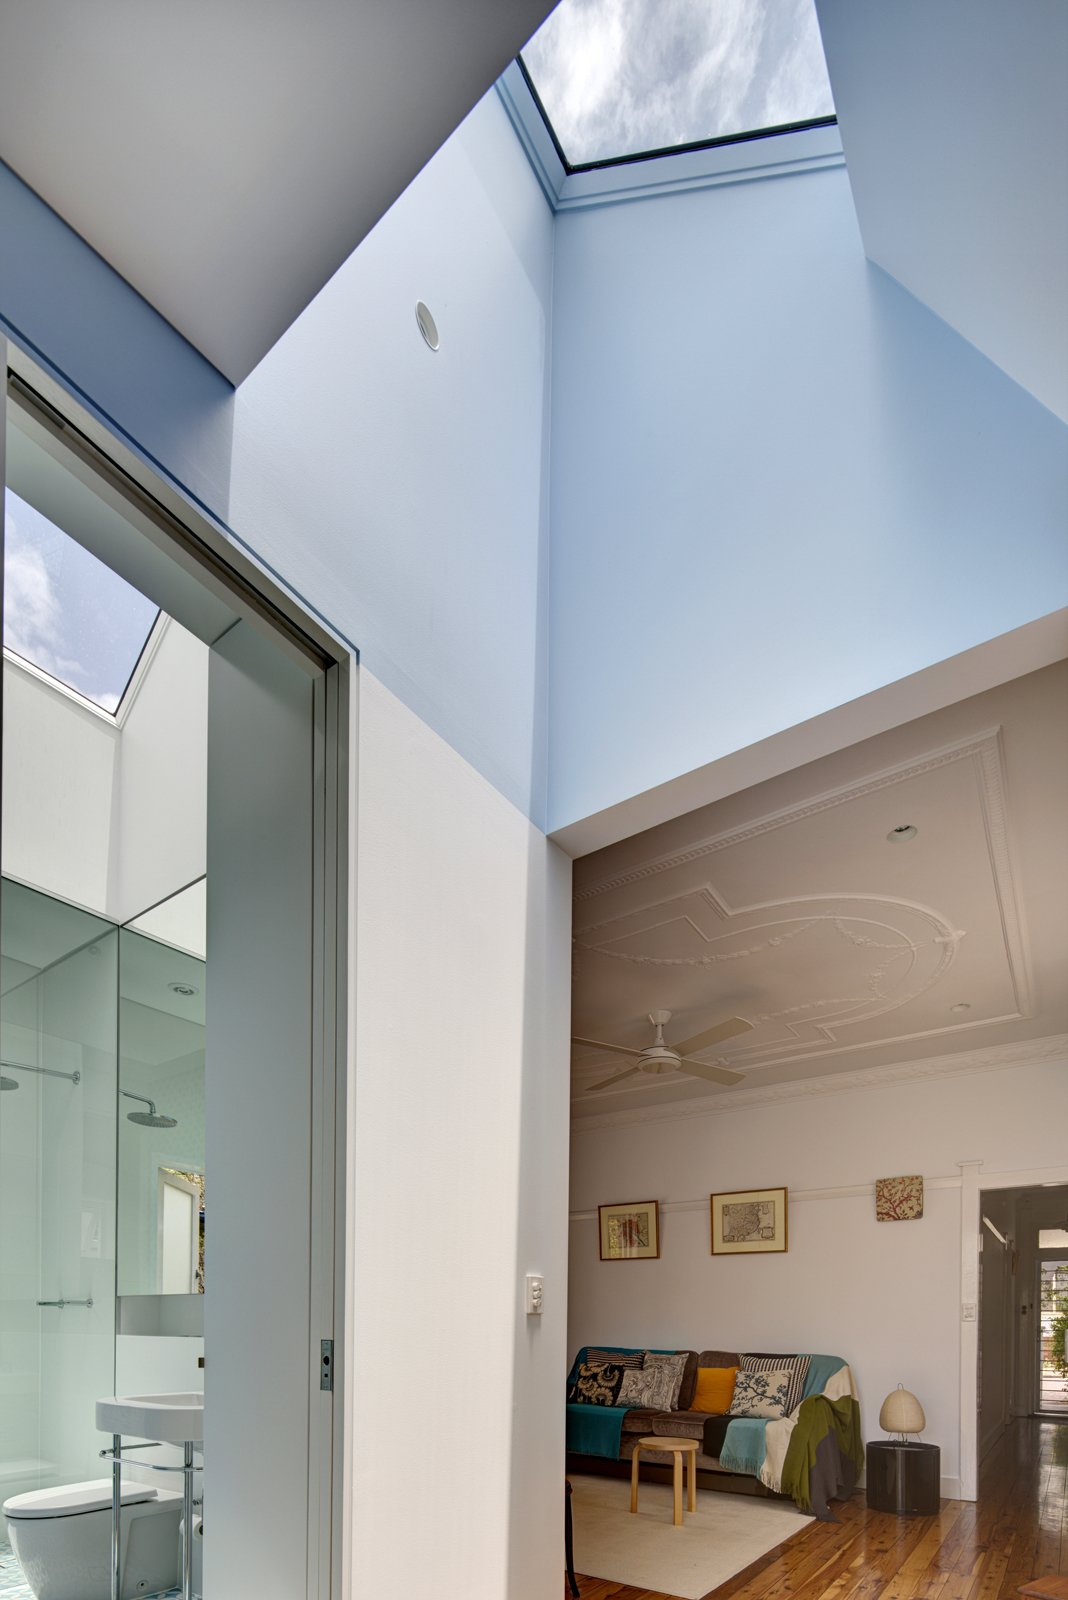 Save for a new fan and a coat of oil on its pine floors, the original living room remains unchanged. The master bathroom, however, has been completely refurbished with Scala accessories and a Duravit Happy D wall basin. Both rooms are brightened by skylights carved into the roof.  Photo 9 of 9 in Renovation Near Sydney Opens Home Onto a Lush Garden